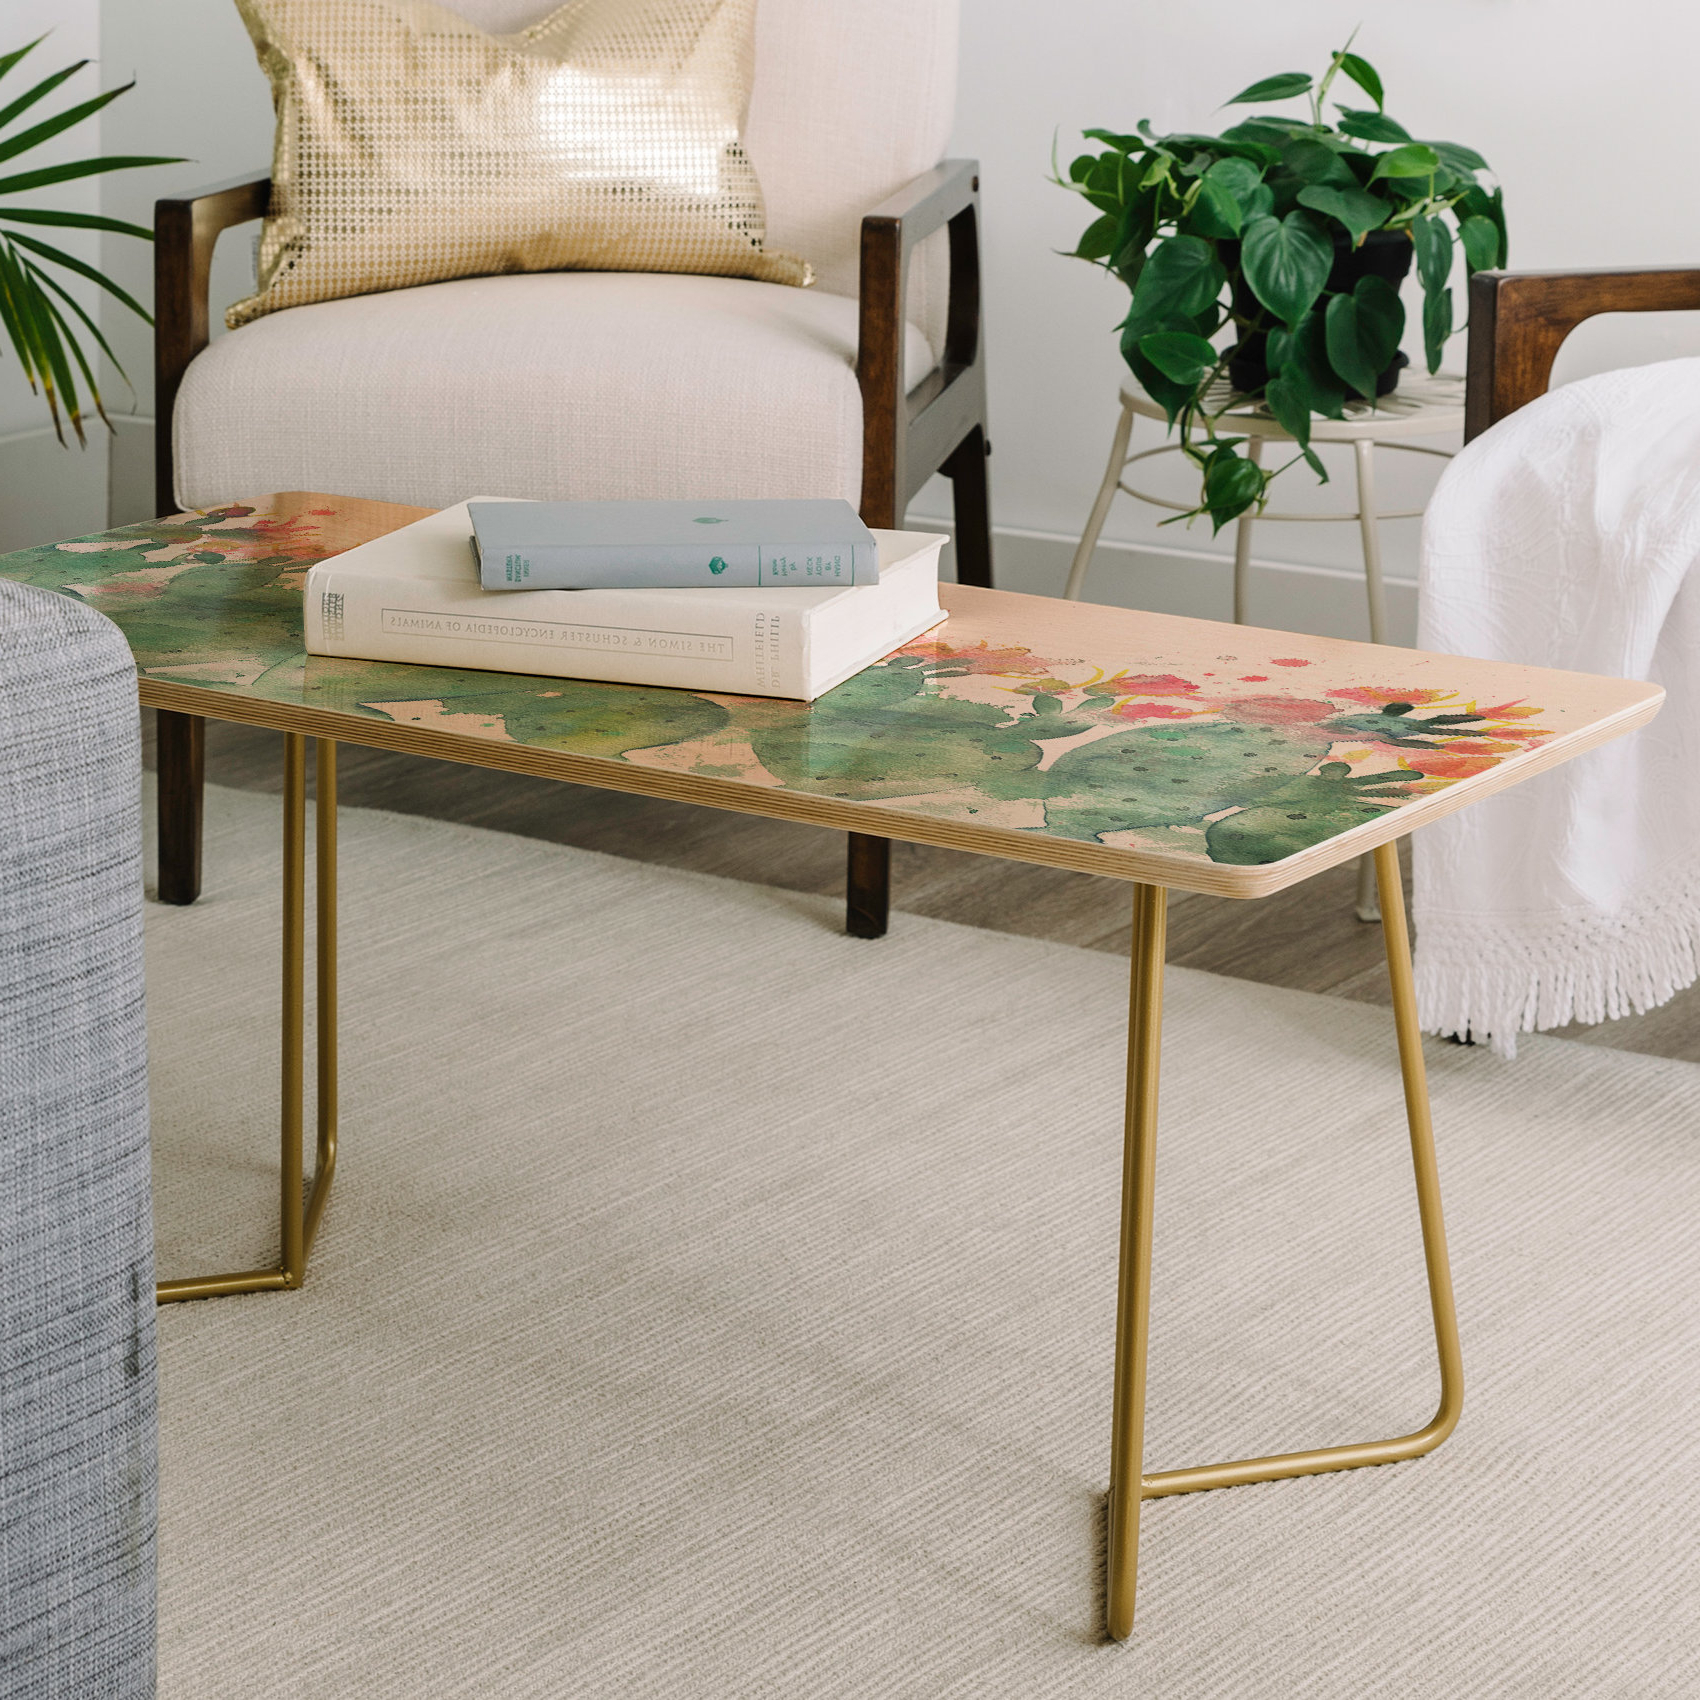 Widely Used East Urban Home Dash And Ash Messy Cactus Coffee Table (View 20 of 20)